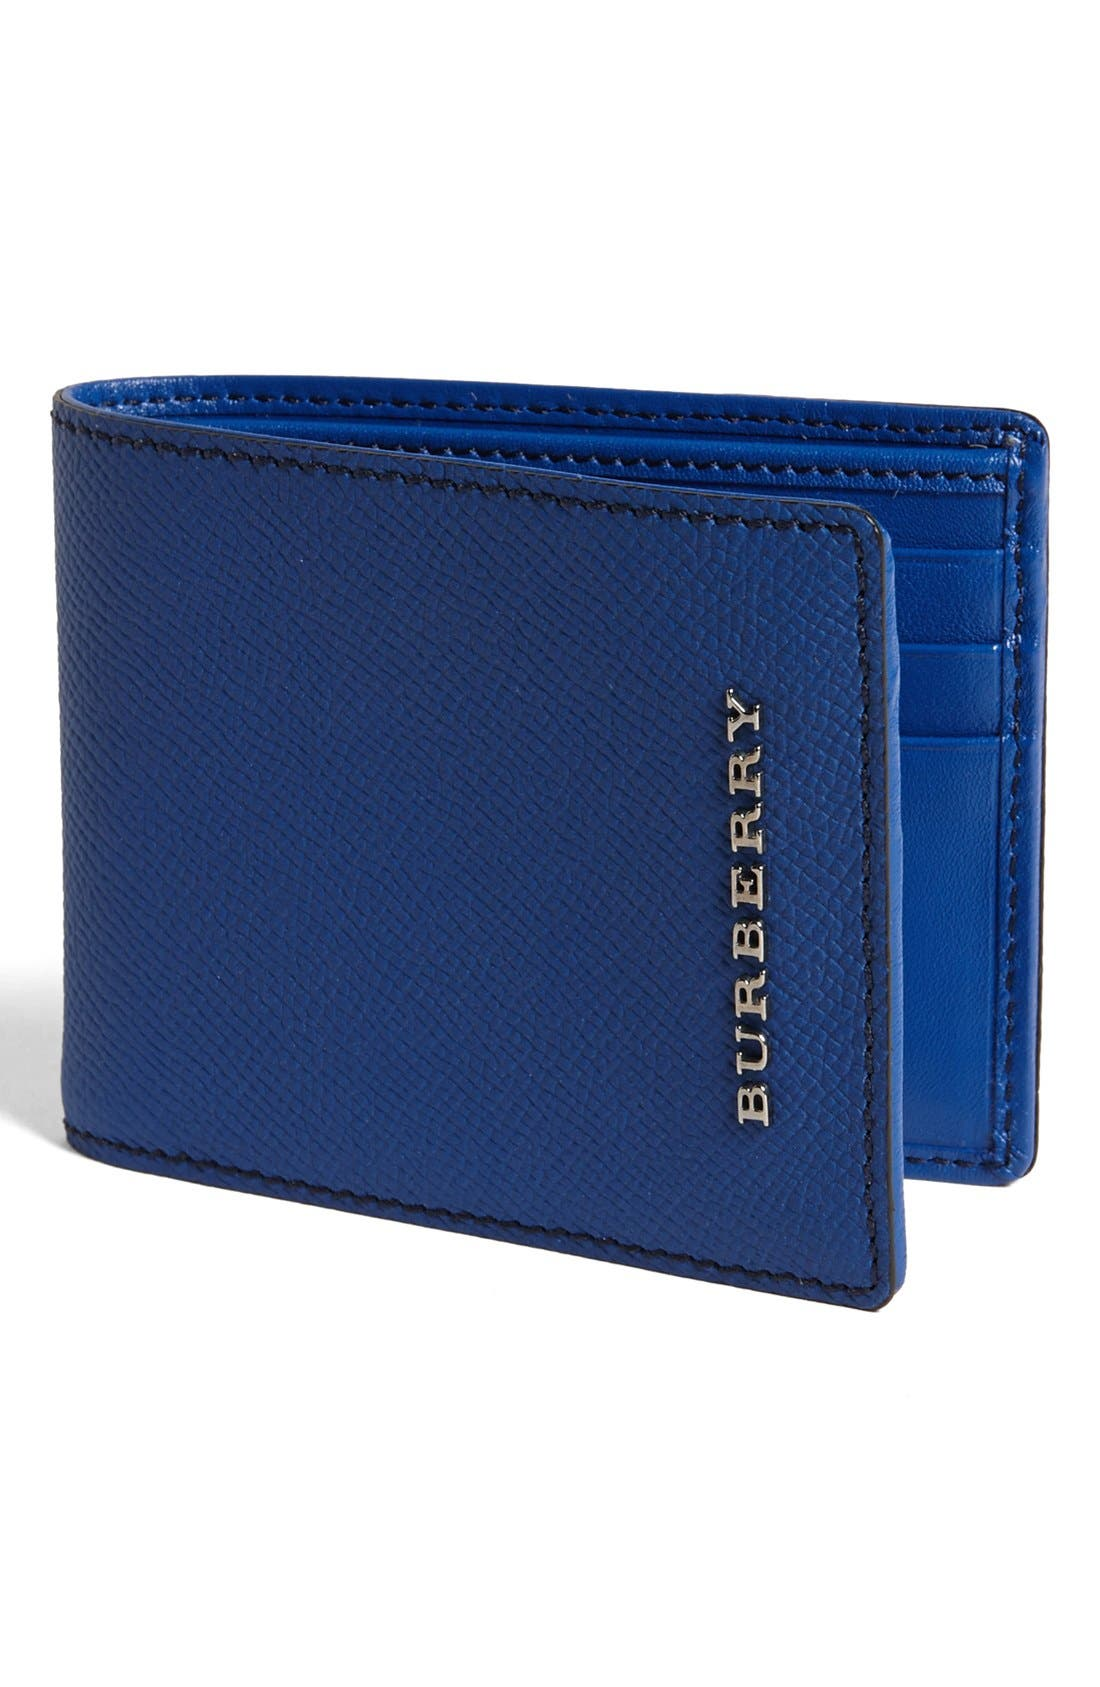 Alternate Image 1 Selected - Burberry Bifold Leather Wallet